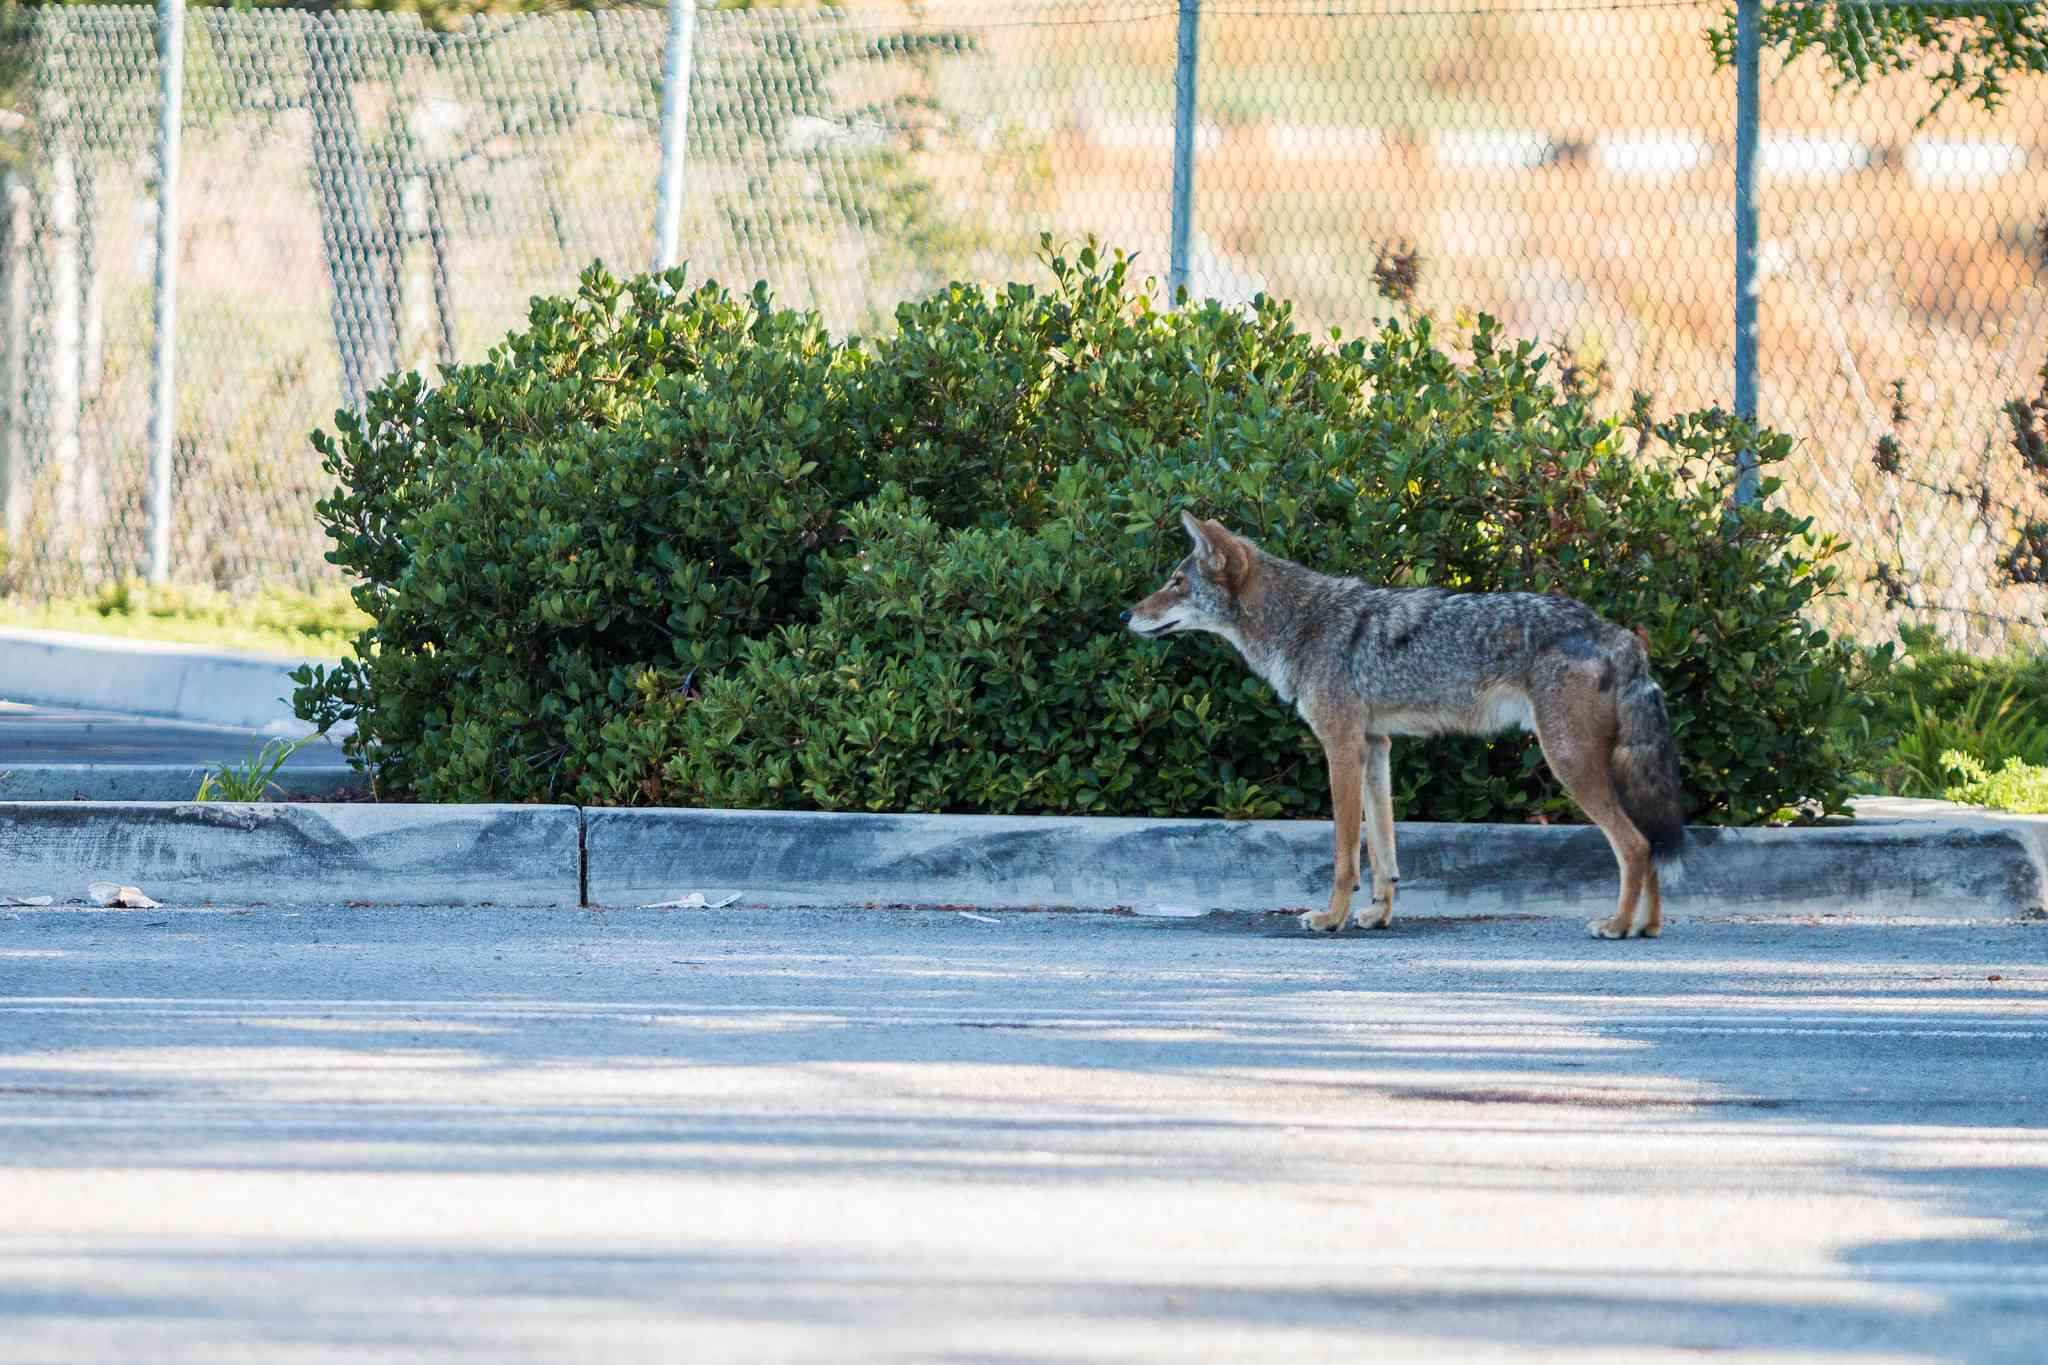 coyote standing in a parking lot